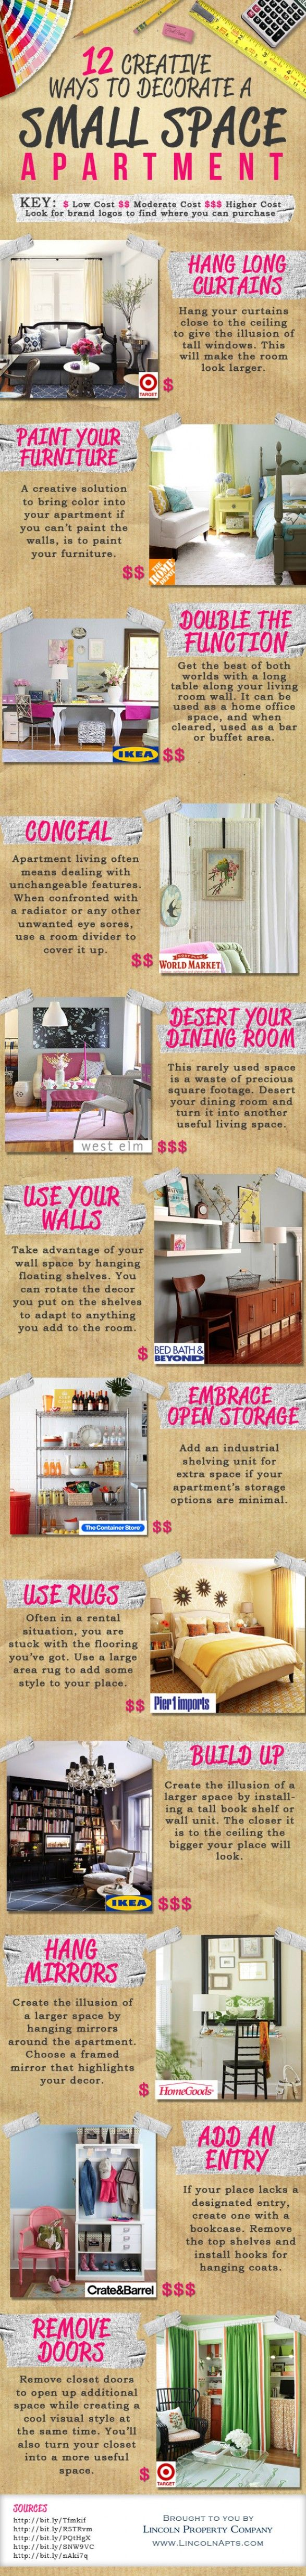 Small space, apartment decorating ideas